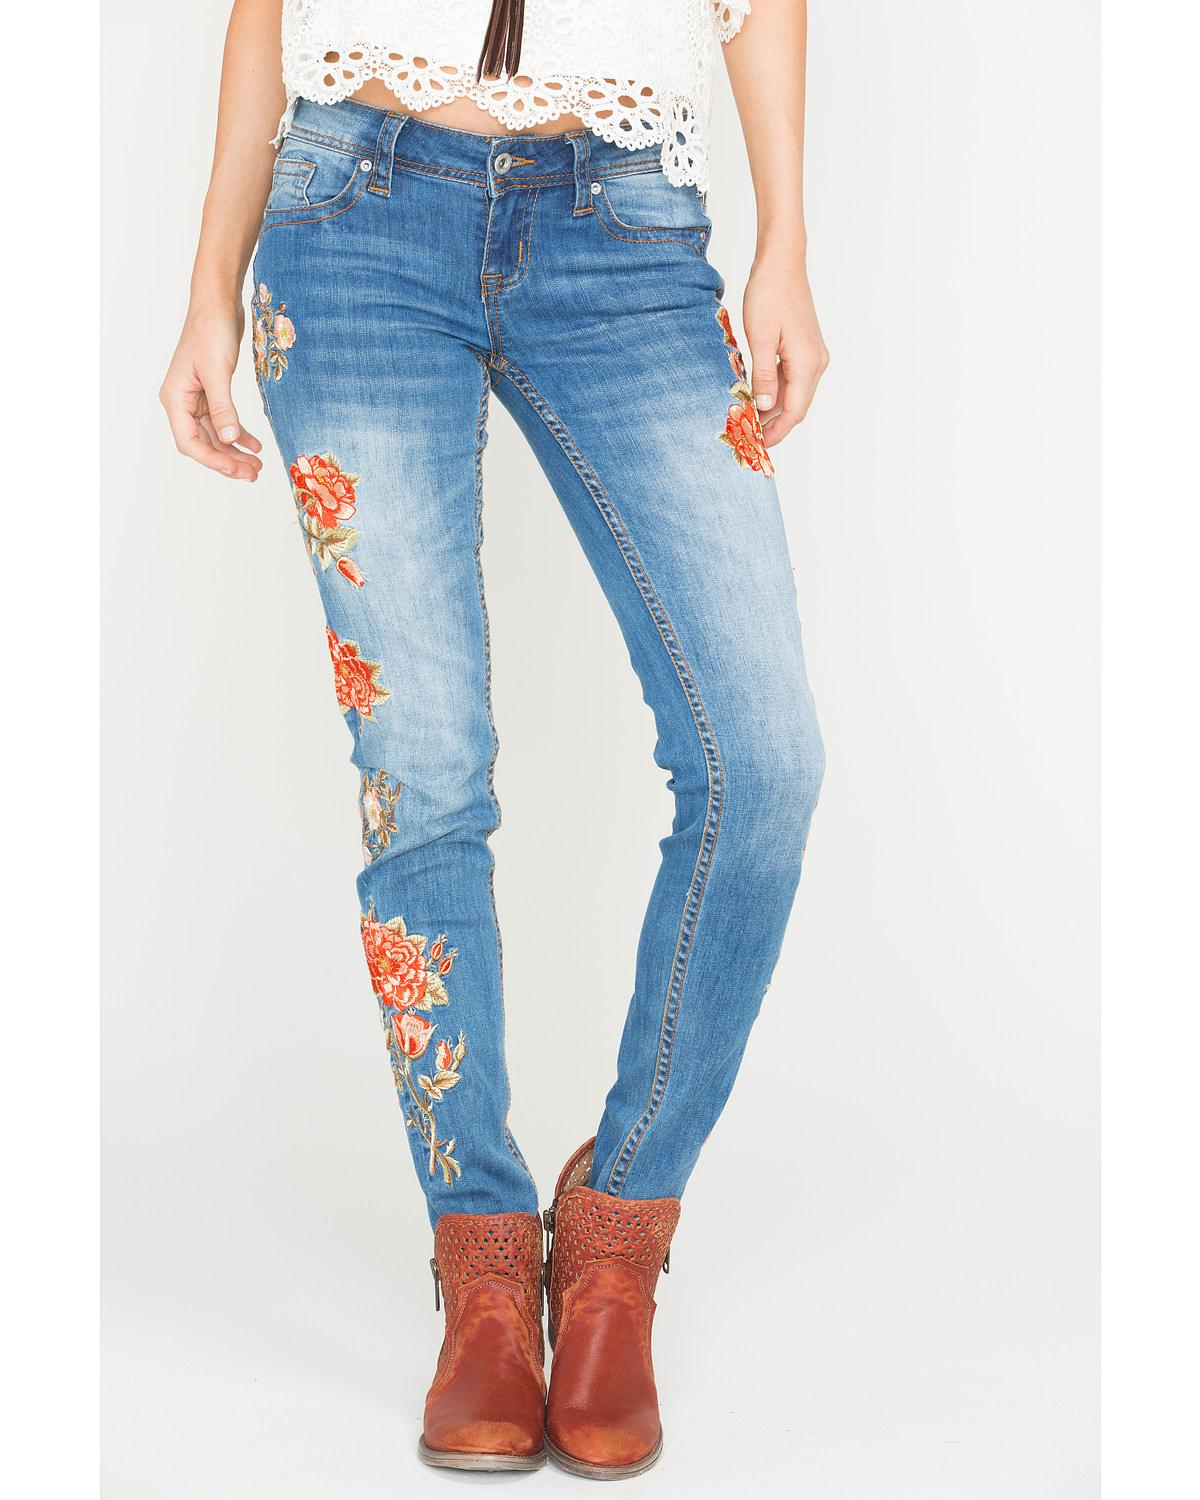 Grace in LA Women's Floral Embroidered Skinny Jeans - JNW3216